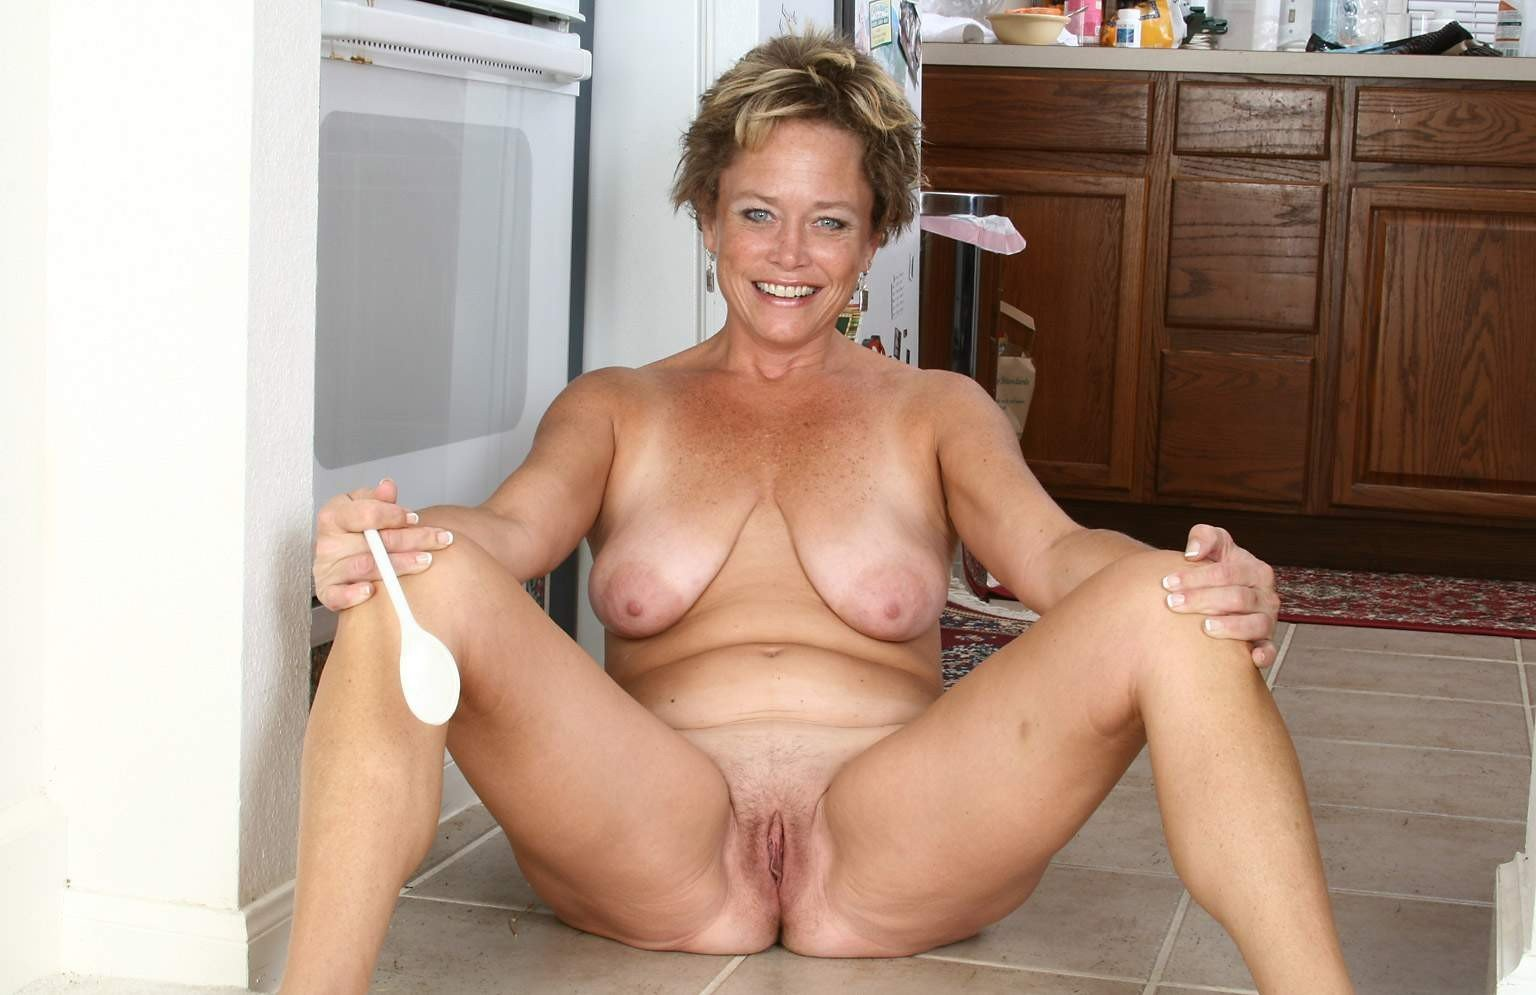 Nude mature mom videos #1